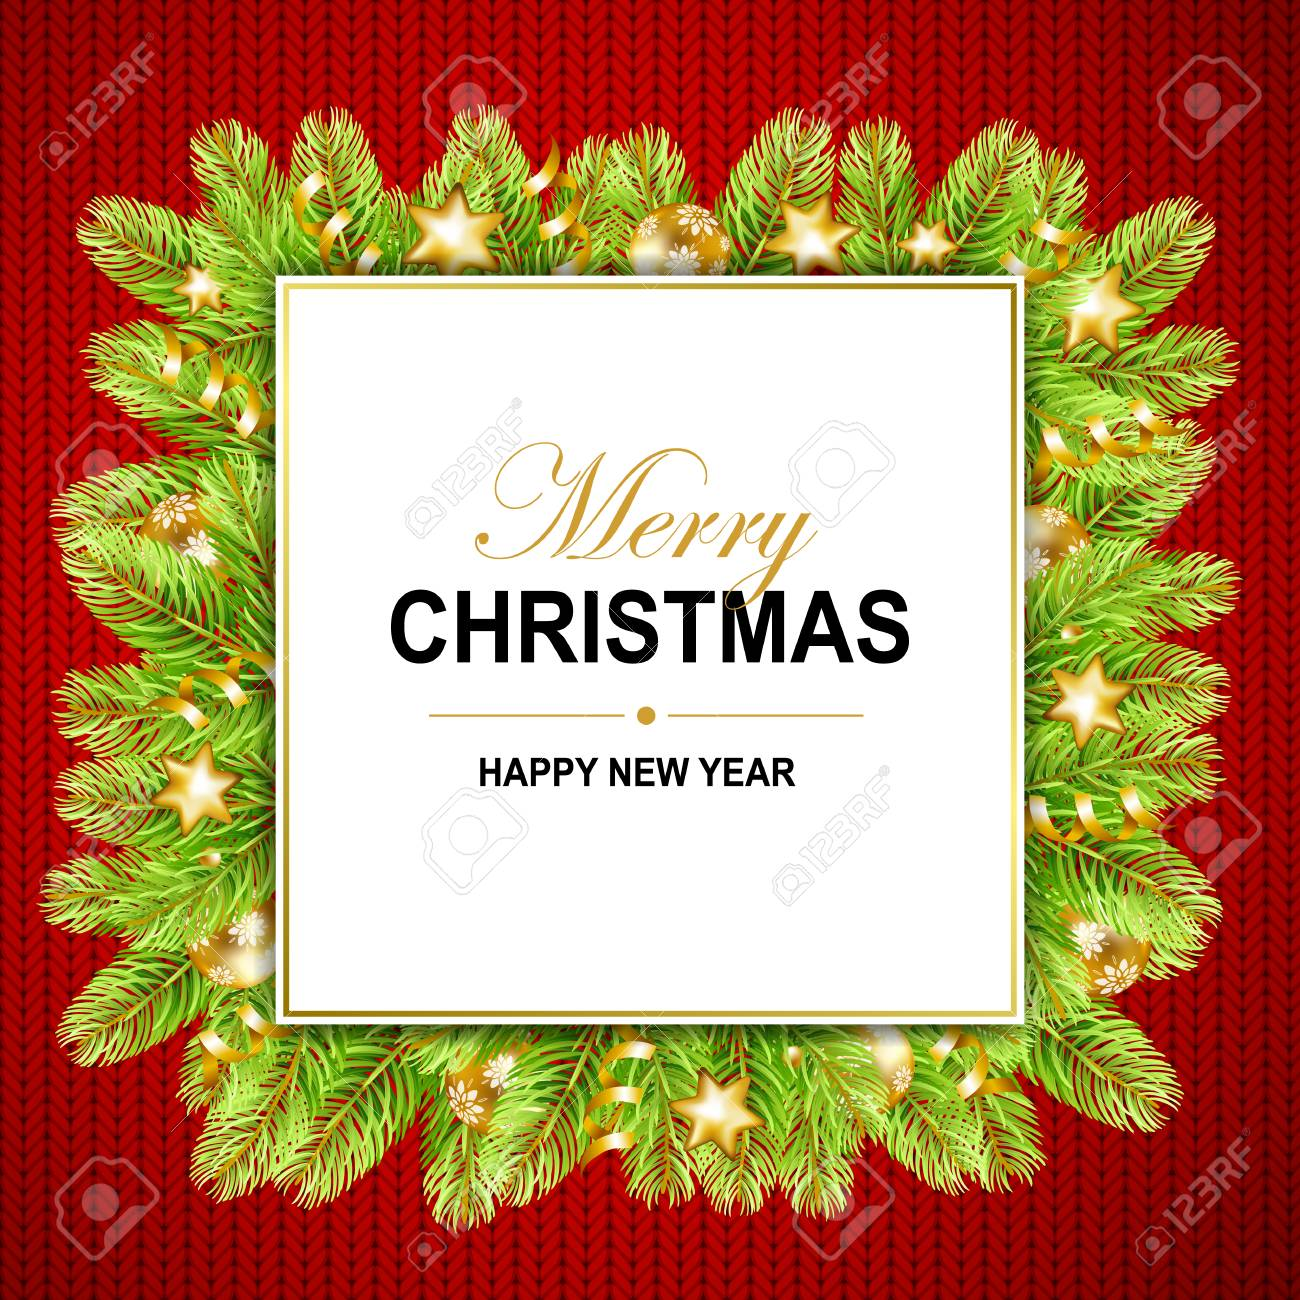 Merry Christmas And Happy New Year Frame With Gold Ribbon Stars